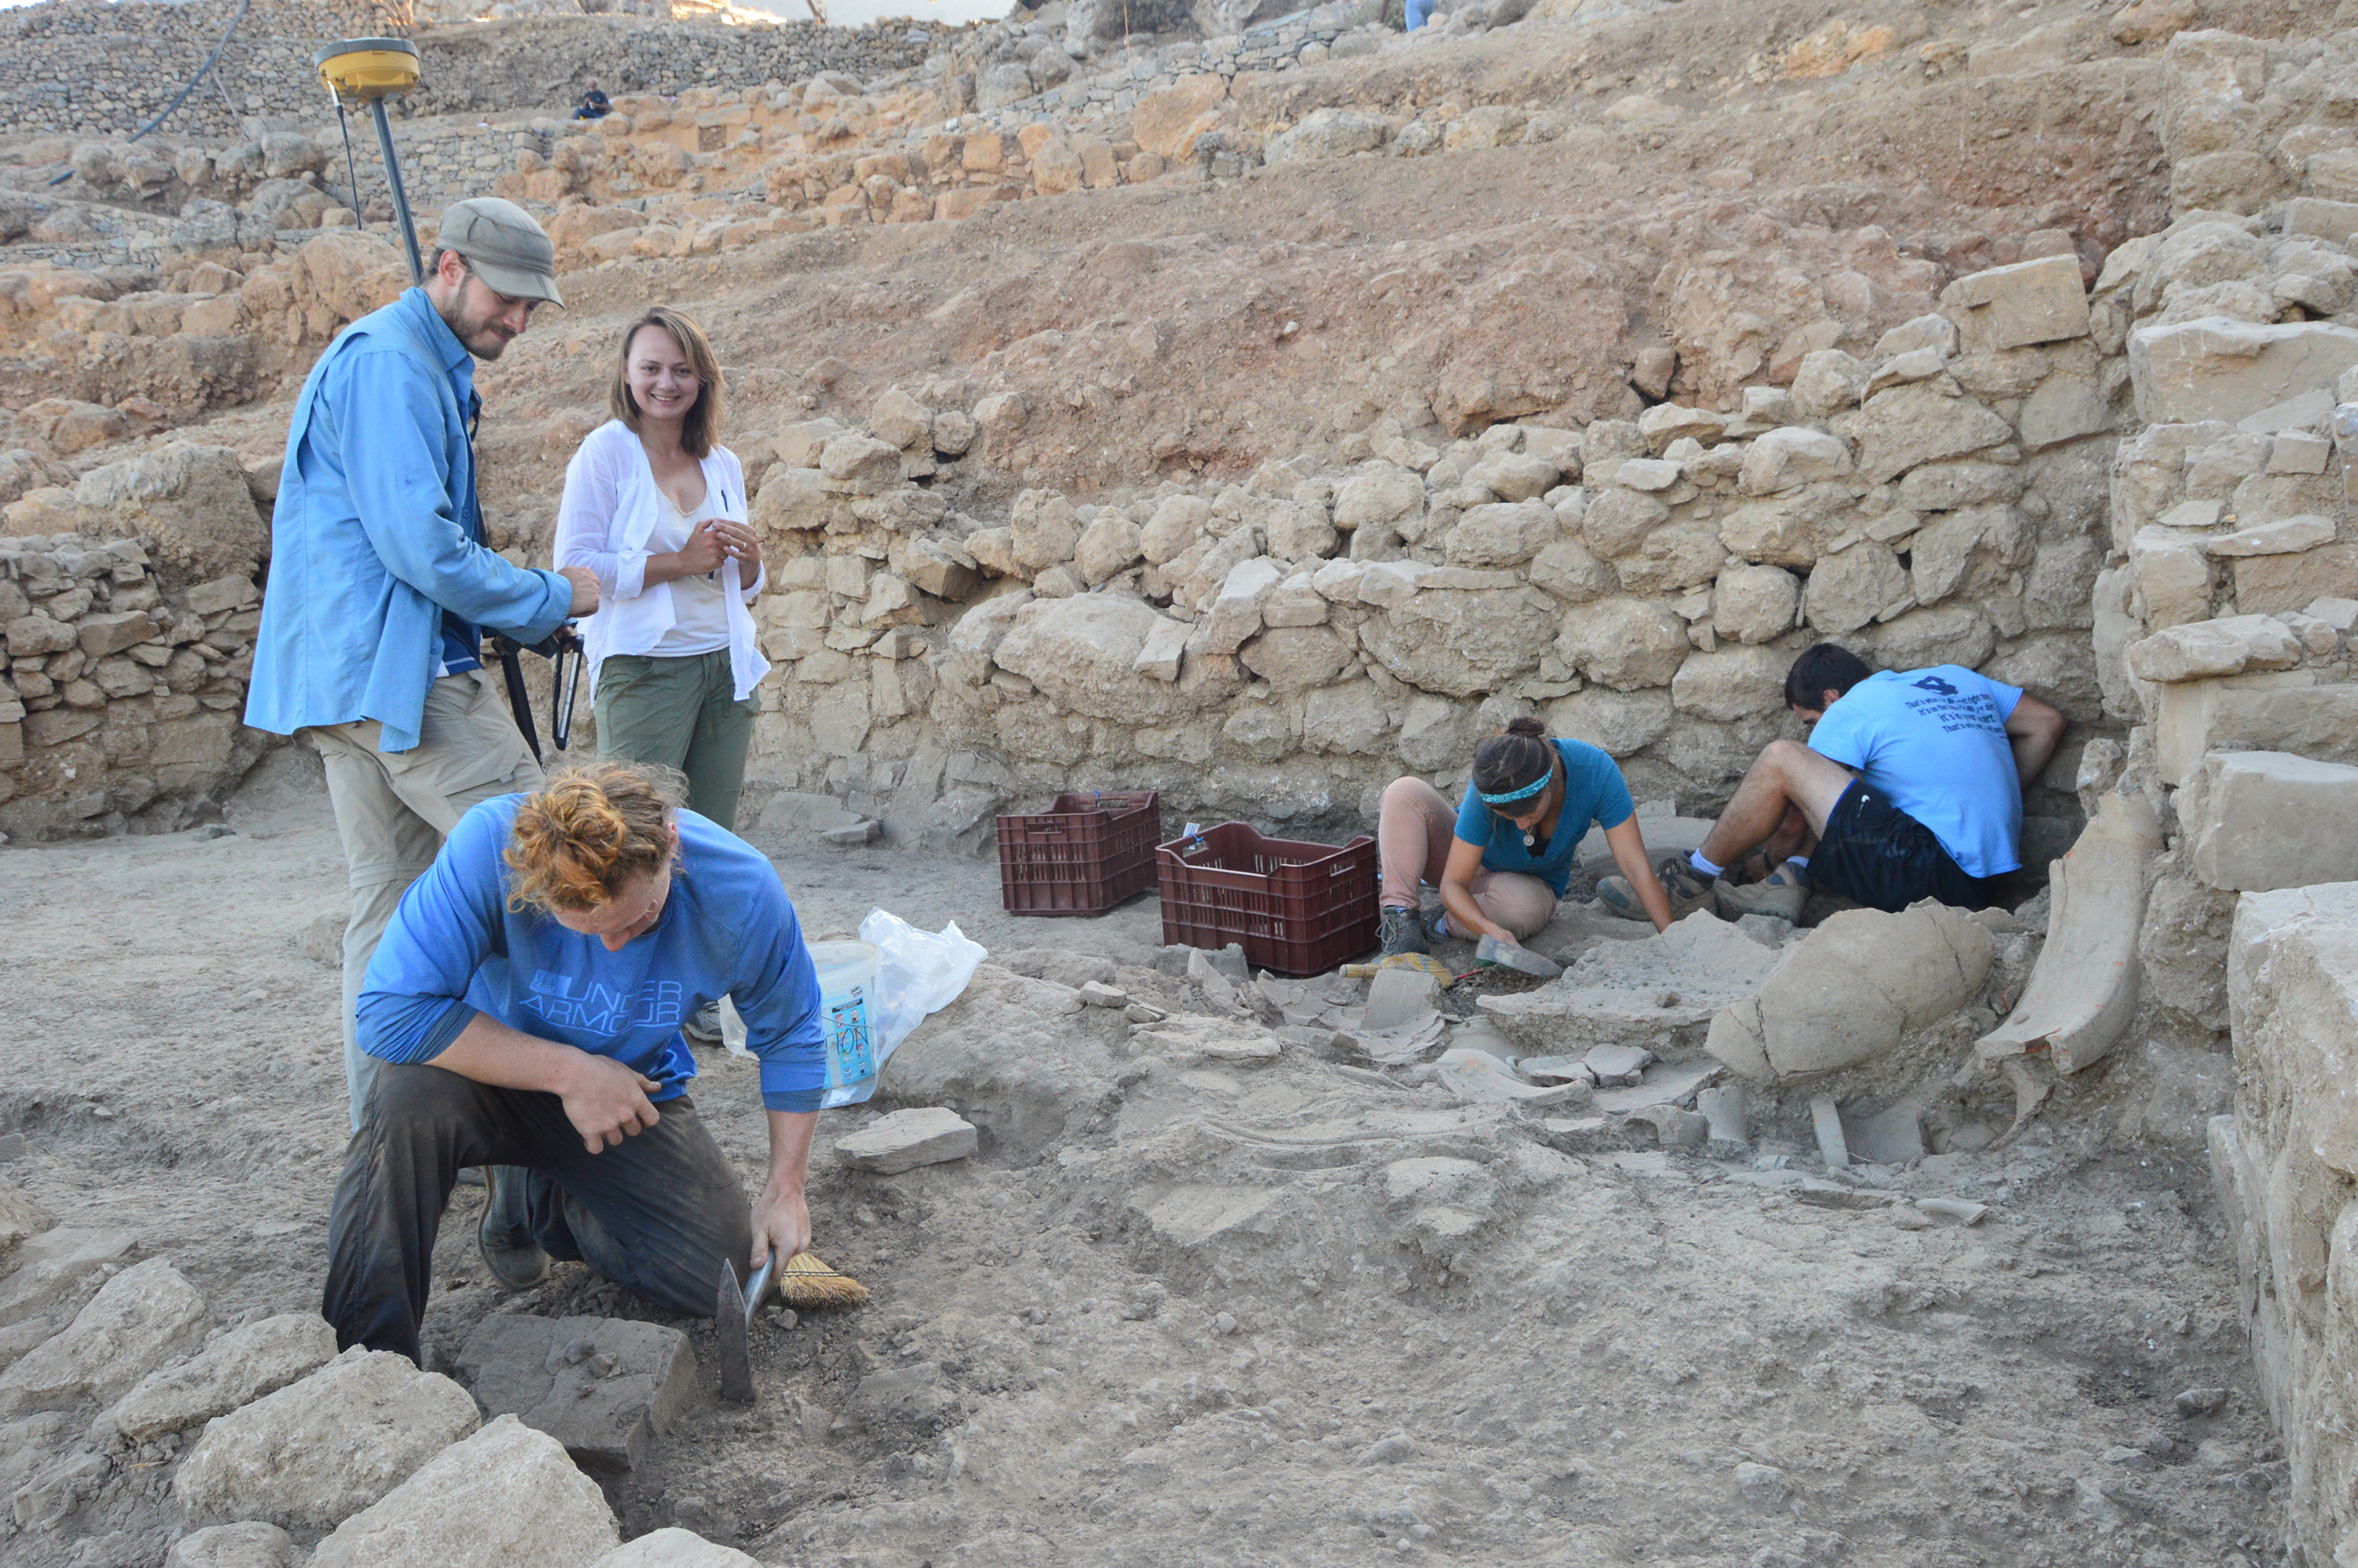 Students participate in all stages of the Azoria Project, from excavation in the field to processing plant remains, animal bones and pottery in the laboratory. (photo courtesy of Cicek Beeby)